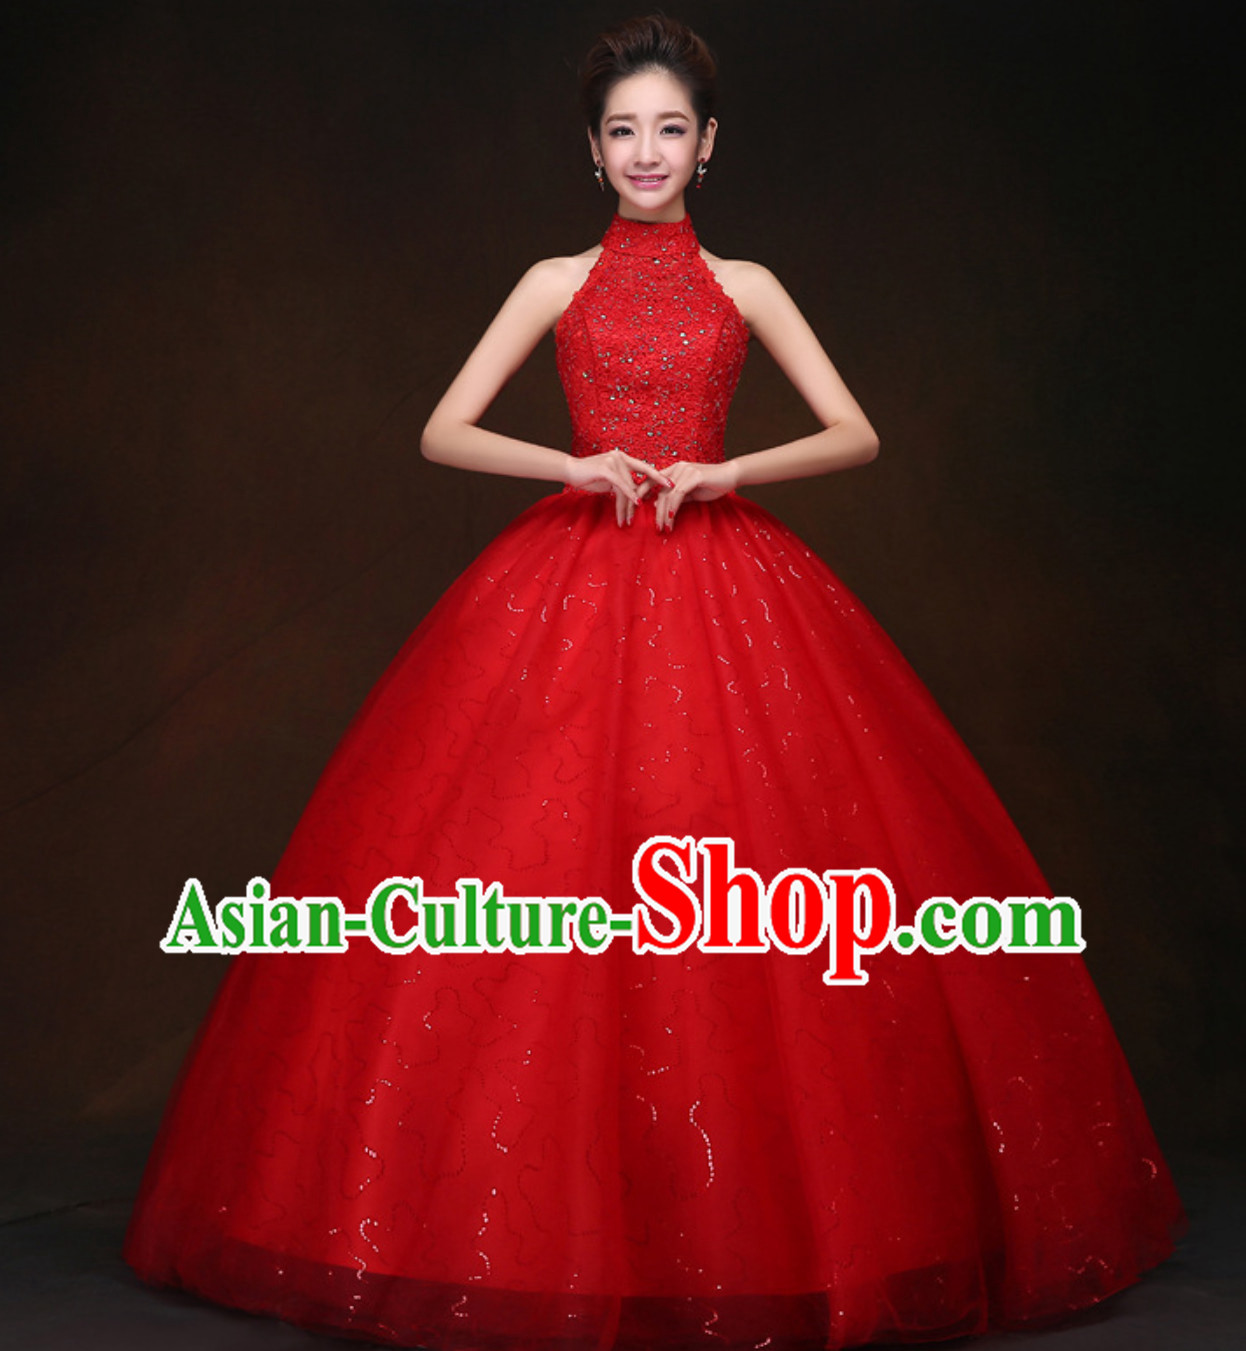 Top Classical Red Romantic Princess Wedding Dress Evening Dresses